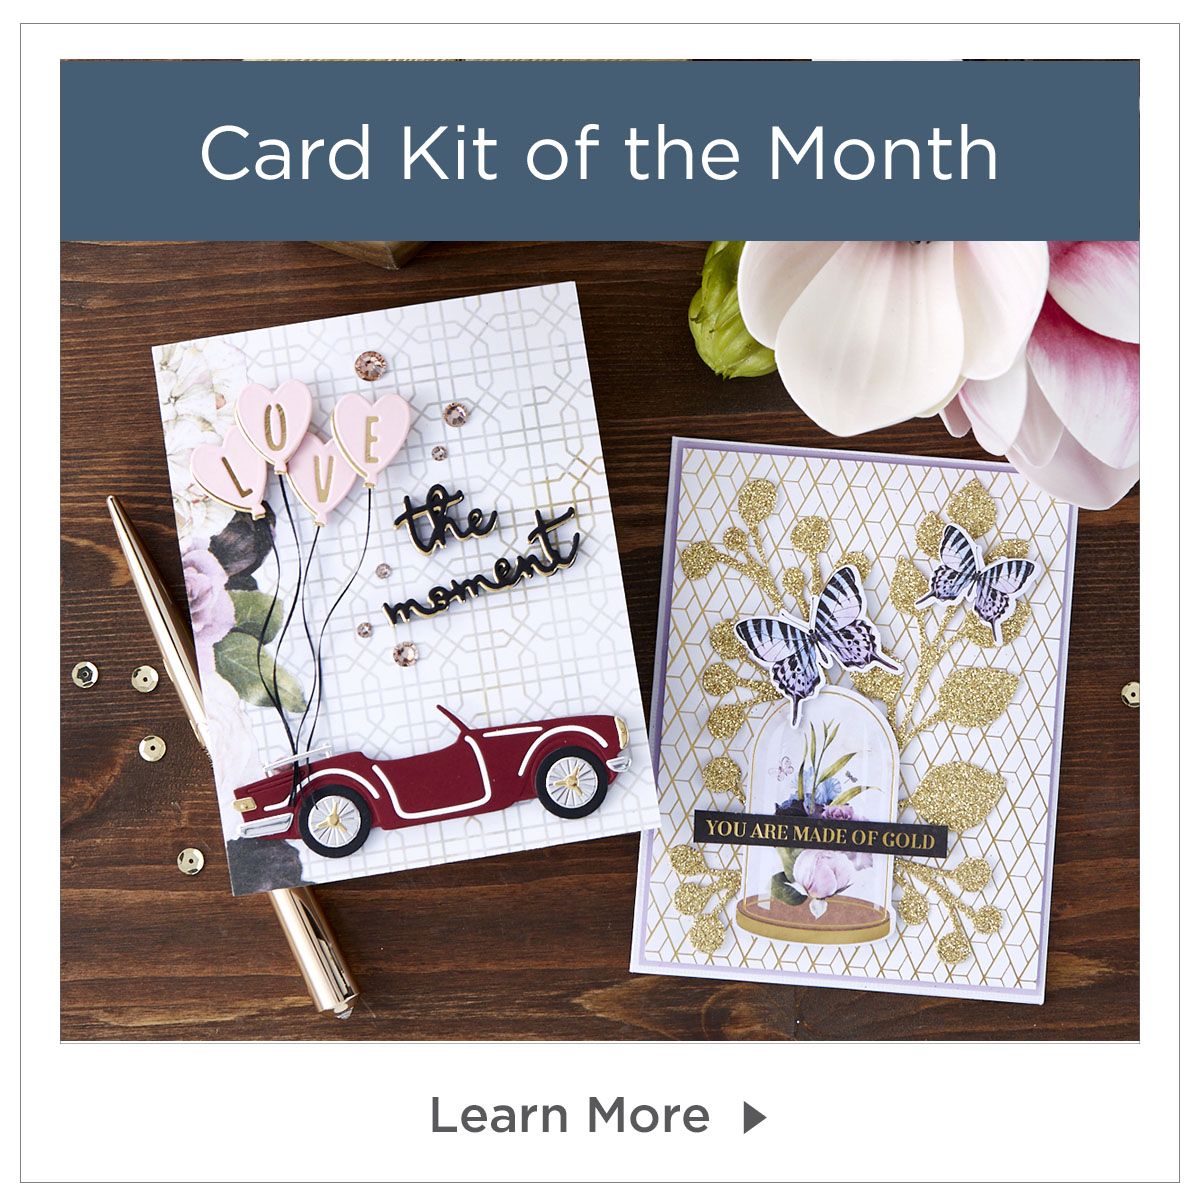 Card Kit of the month